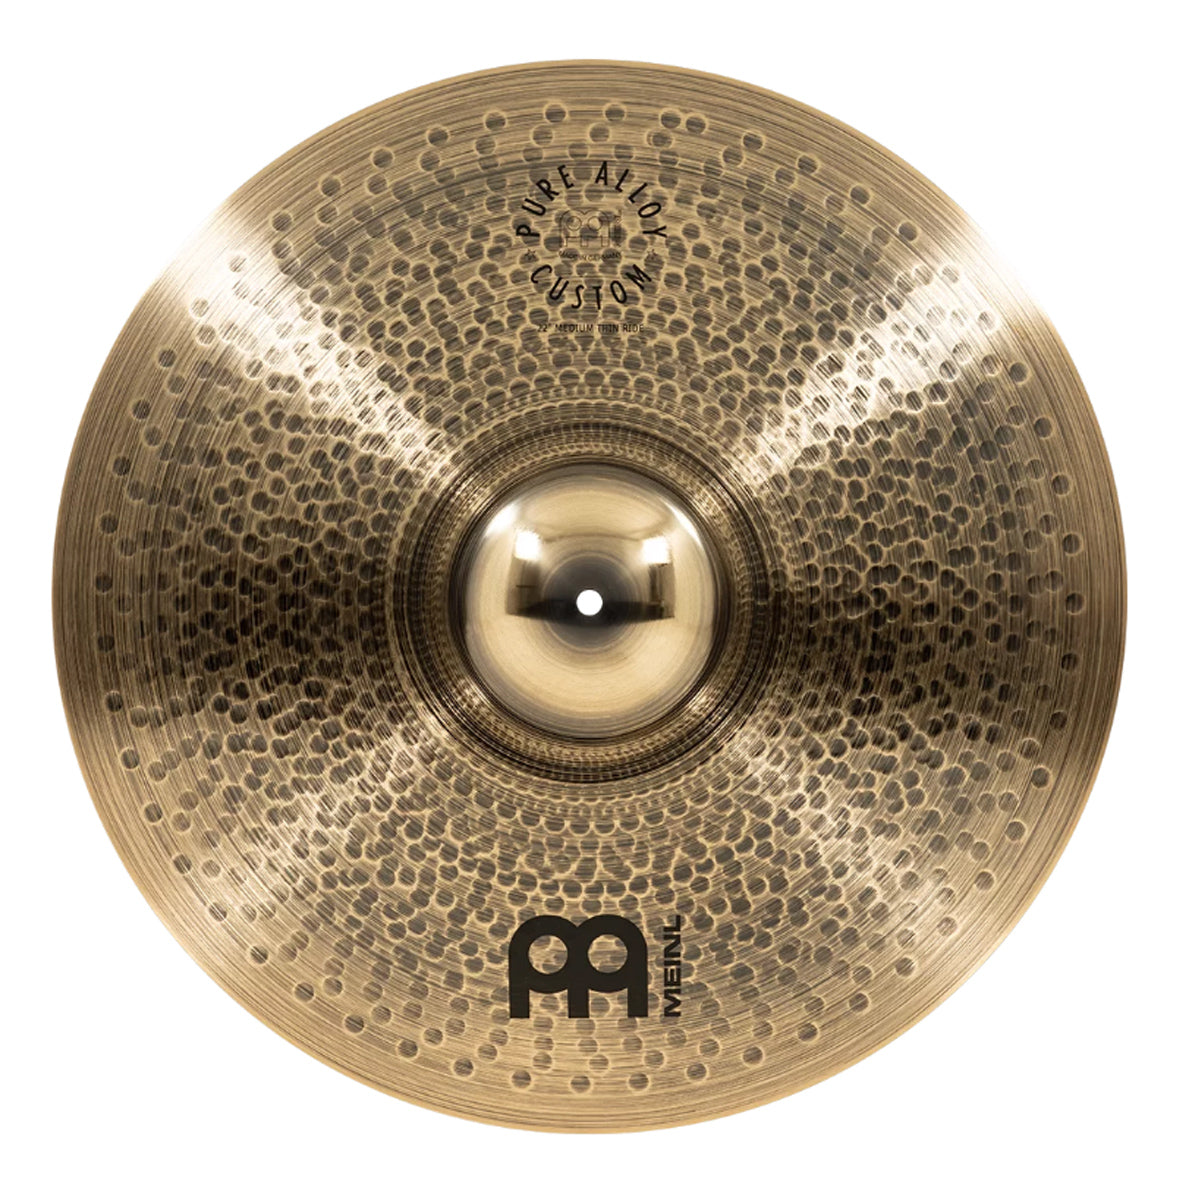 Meinl 22MTR Pure Alloy Custom 22inch Medium Thin Ride Cymbal